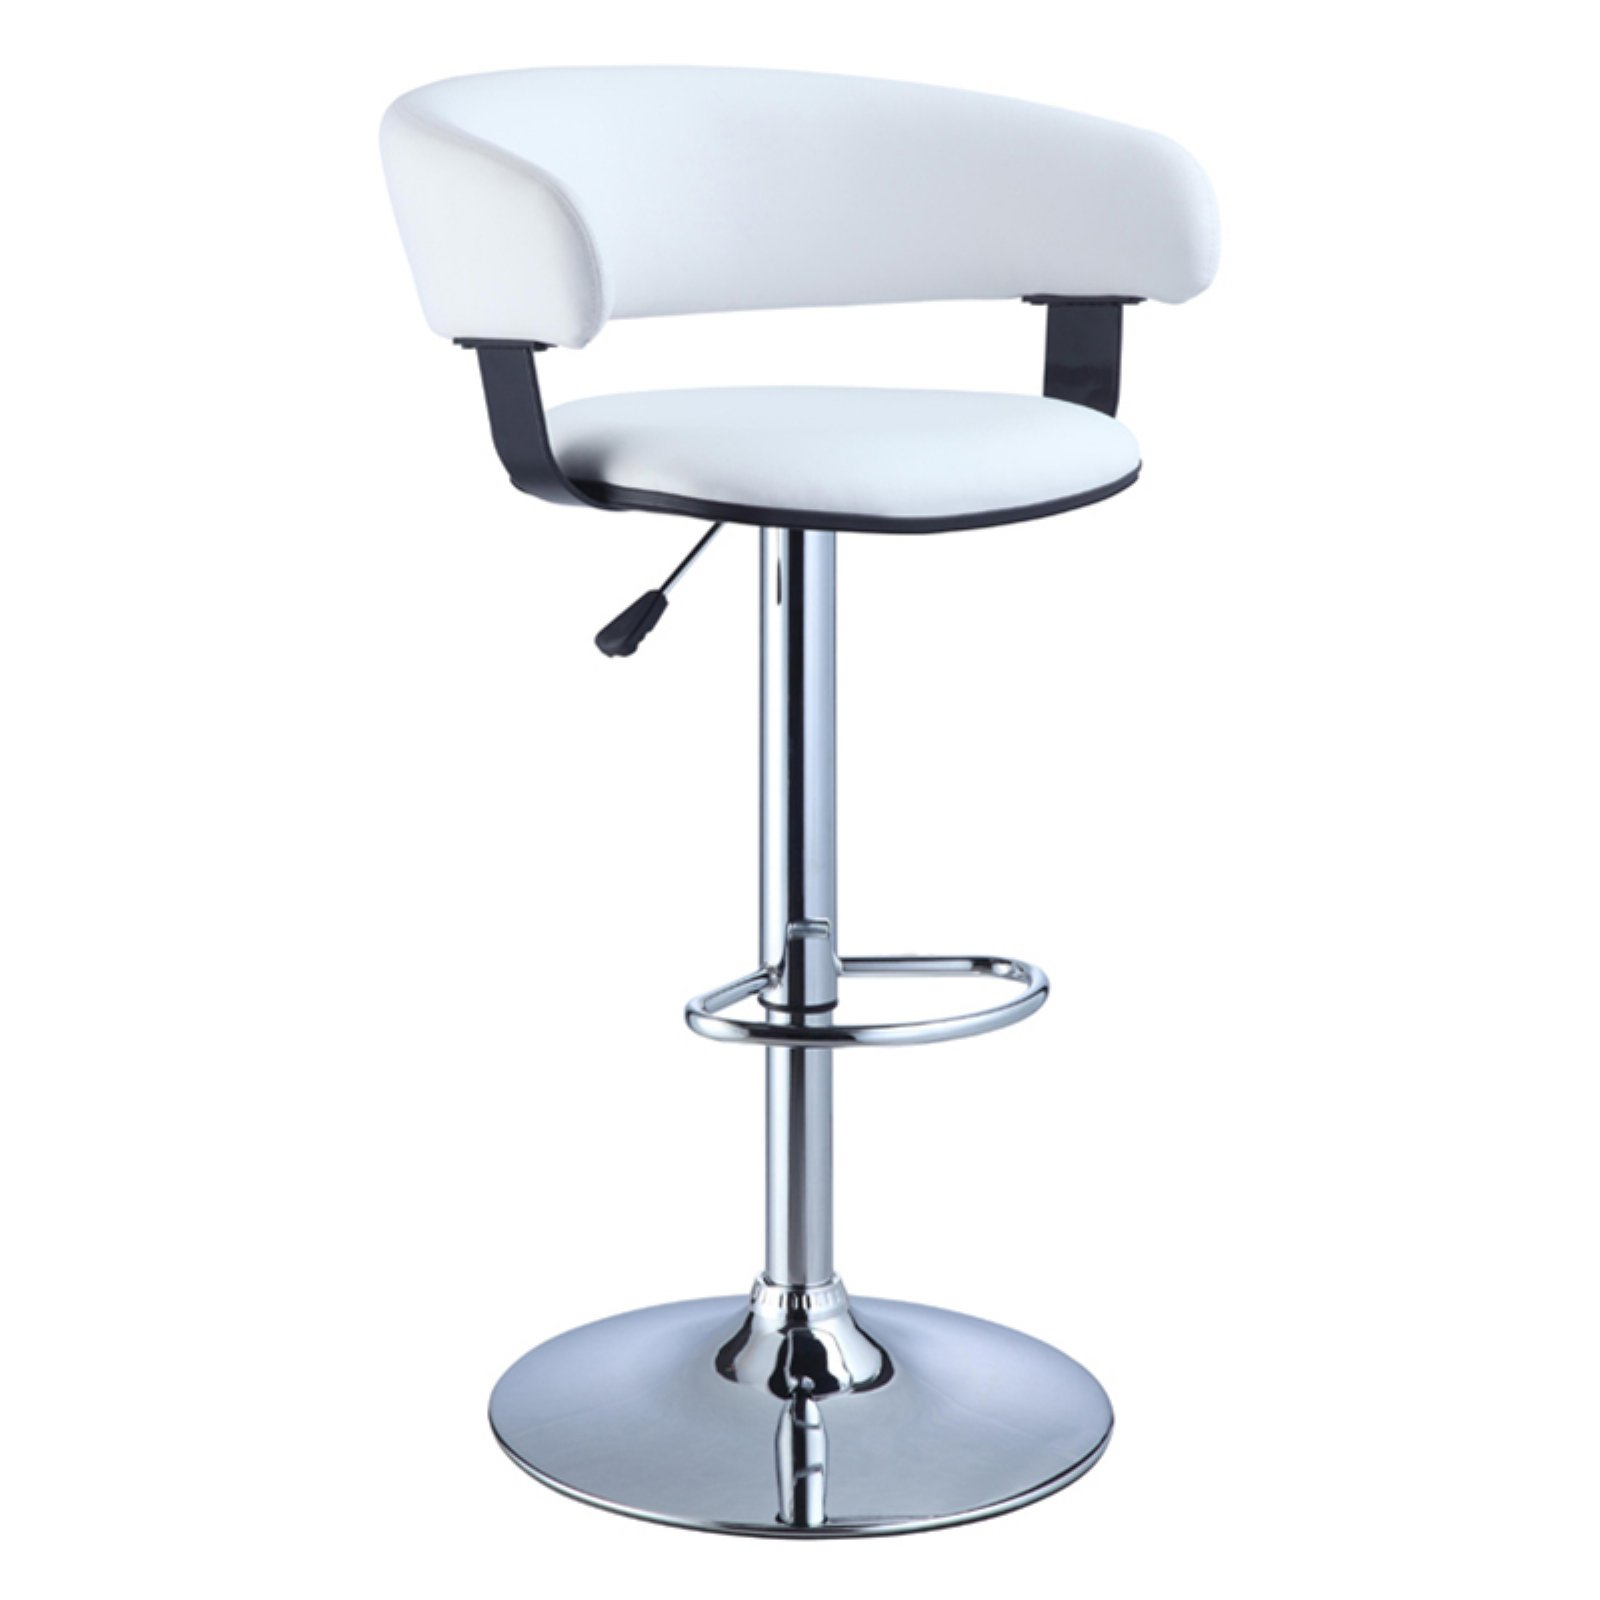 Powell Barrel Adjustable Height Swivel Bar Stool, White Faux Leather and Chrome by Powell